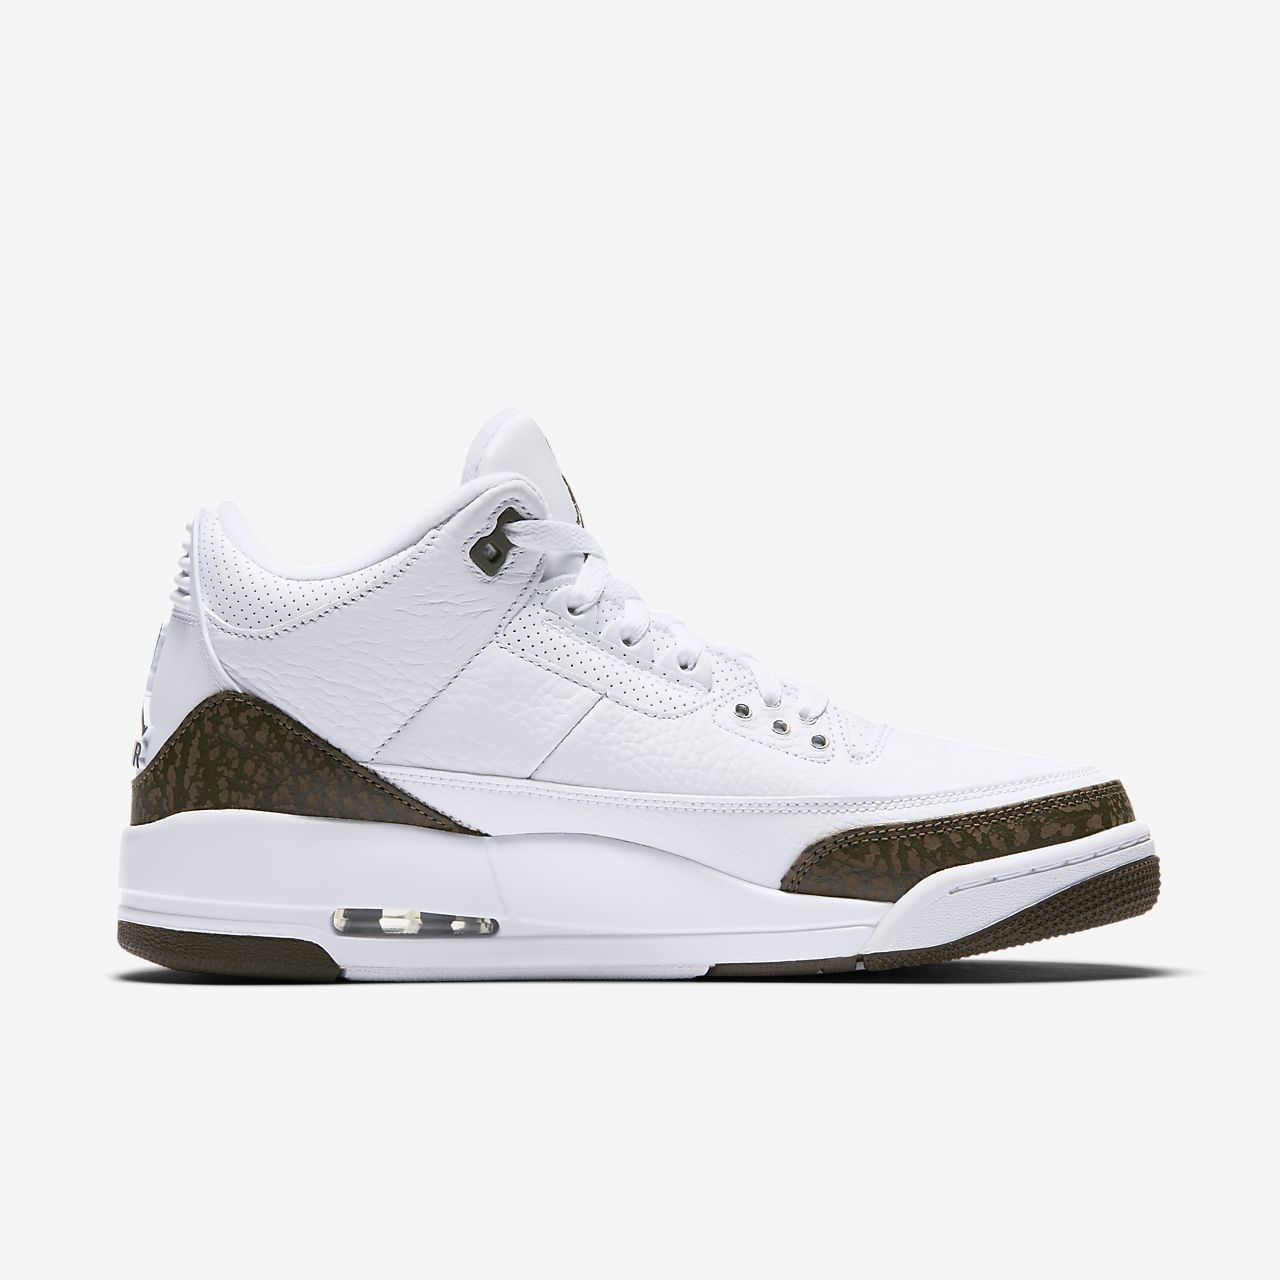 8d3fac069cfb90 Air Jordan 3 Retro Men s Shoe. Nike.com